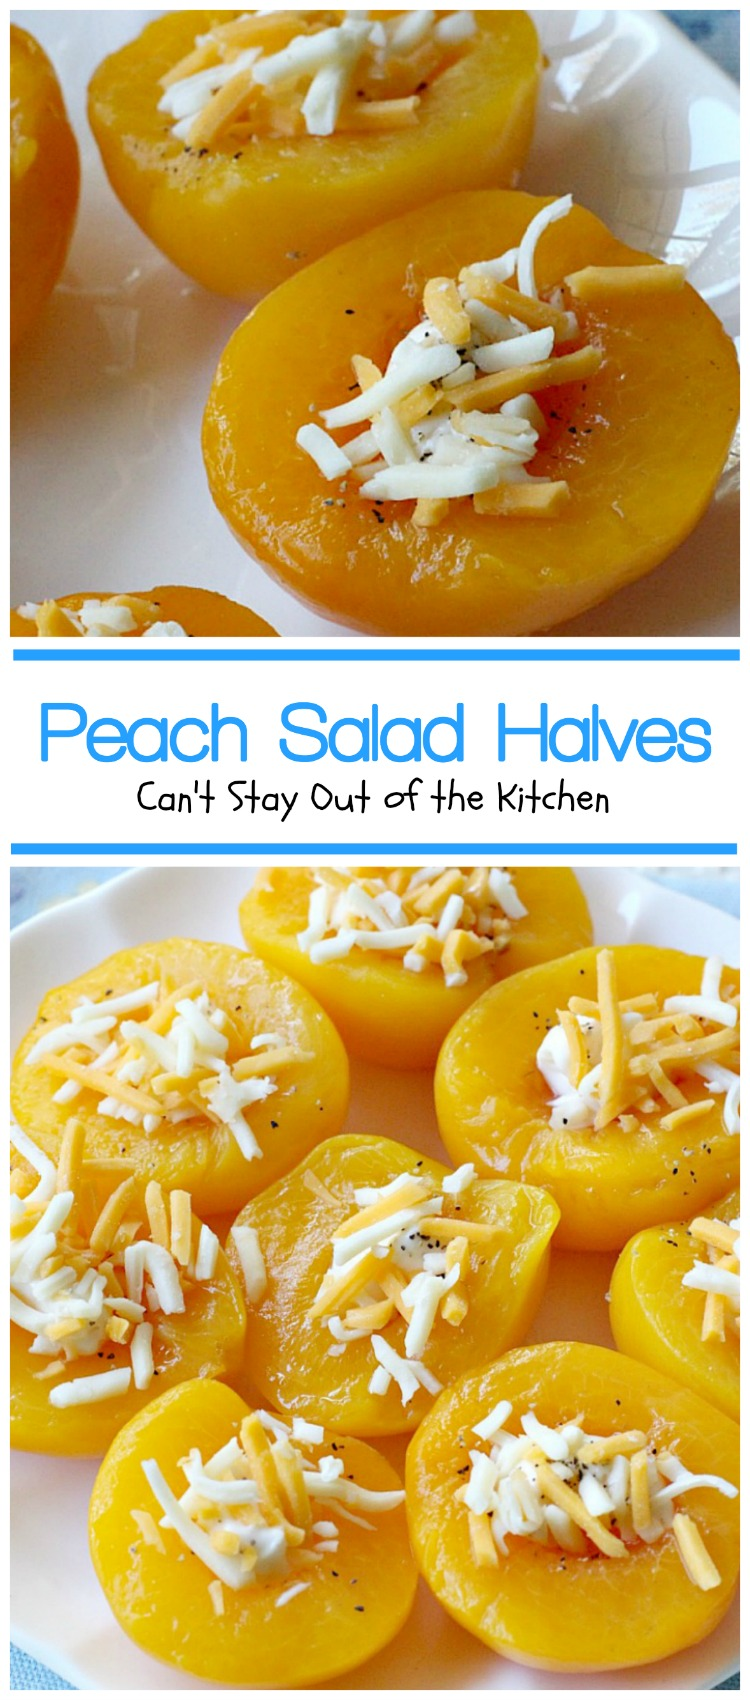 Peach Salad Halves | Can't Stay Out of the Kitchen | this lovely #fruit #salad has only 4 ingredients & is so quick and easy. Great for #holiday menus, too.